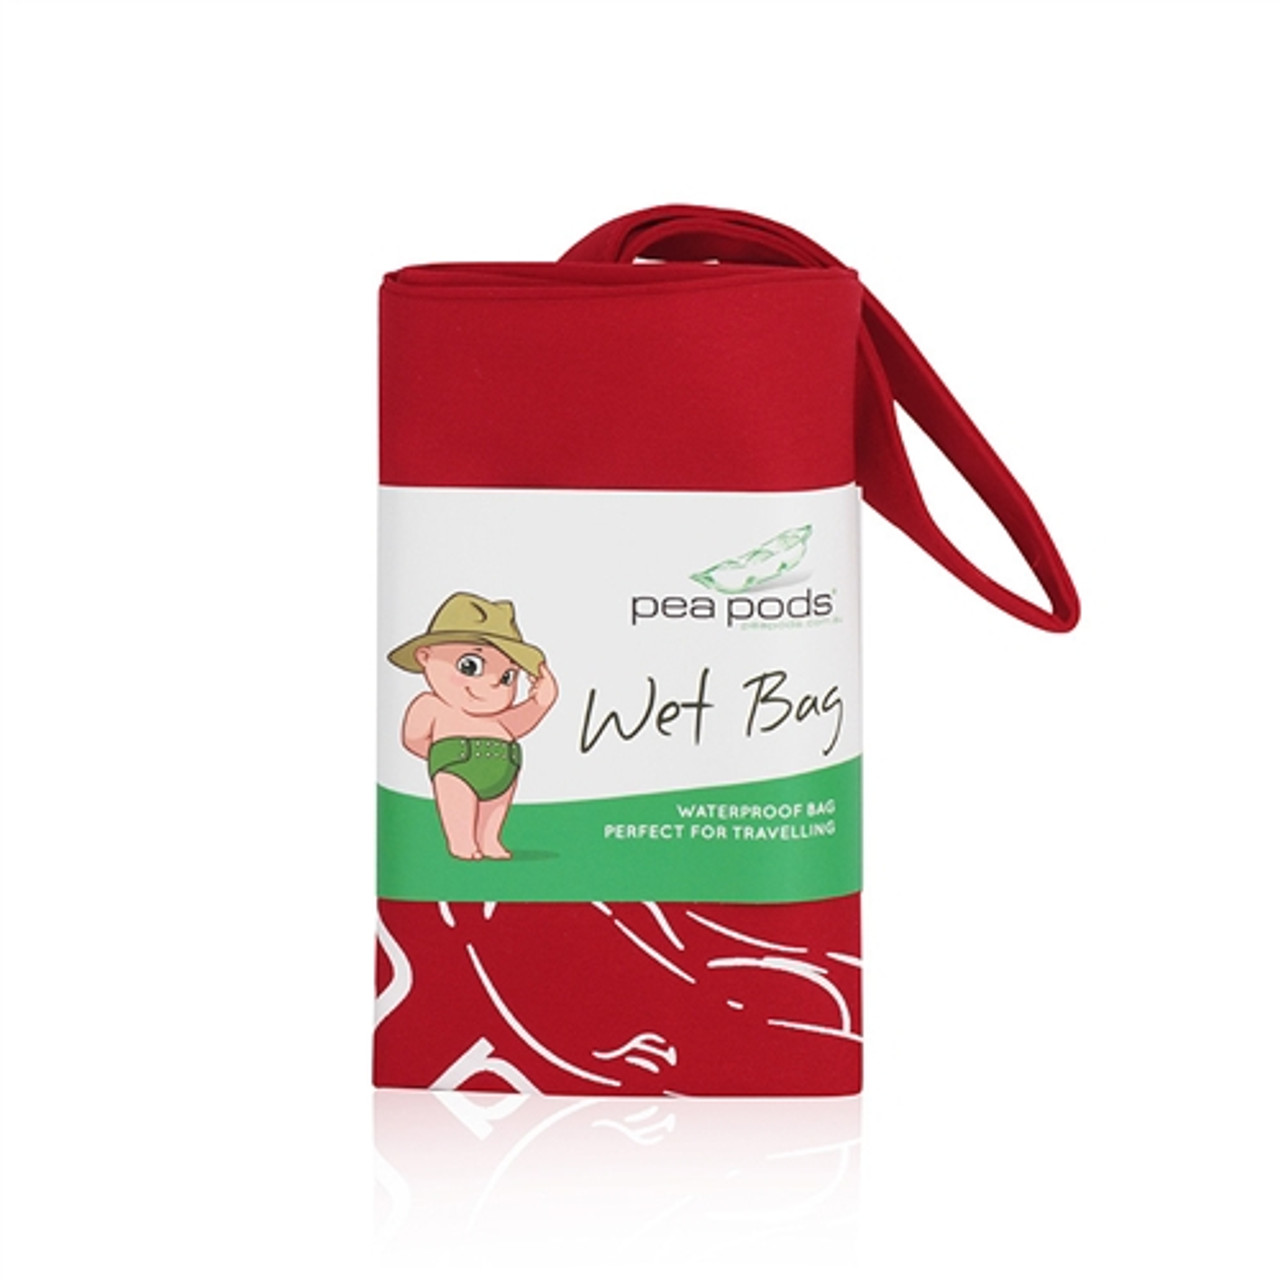 Wet-Bag-Red-Packaging